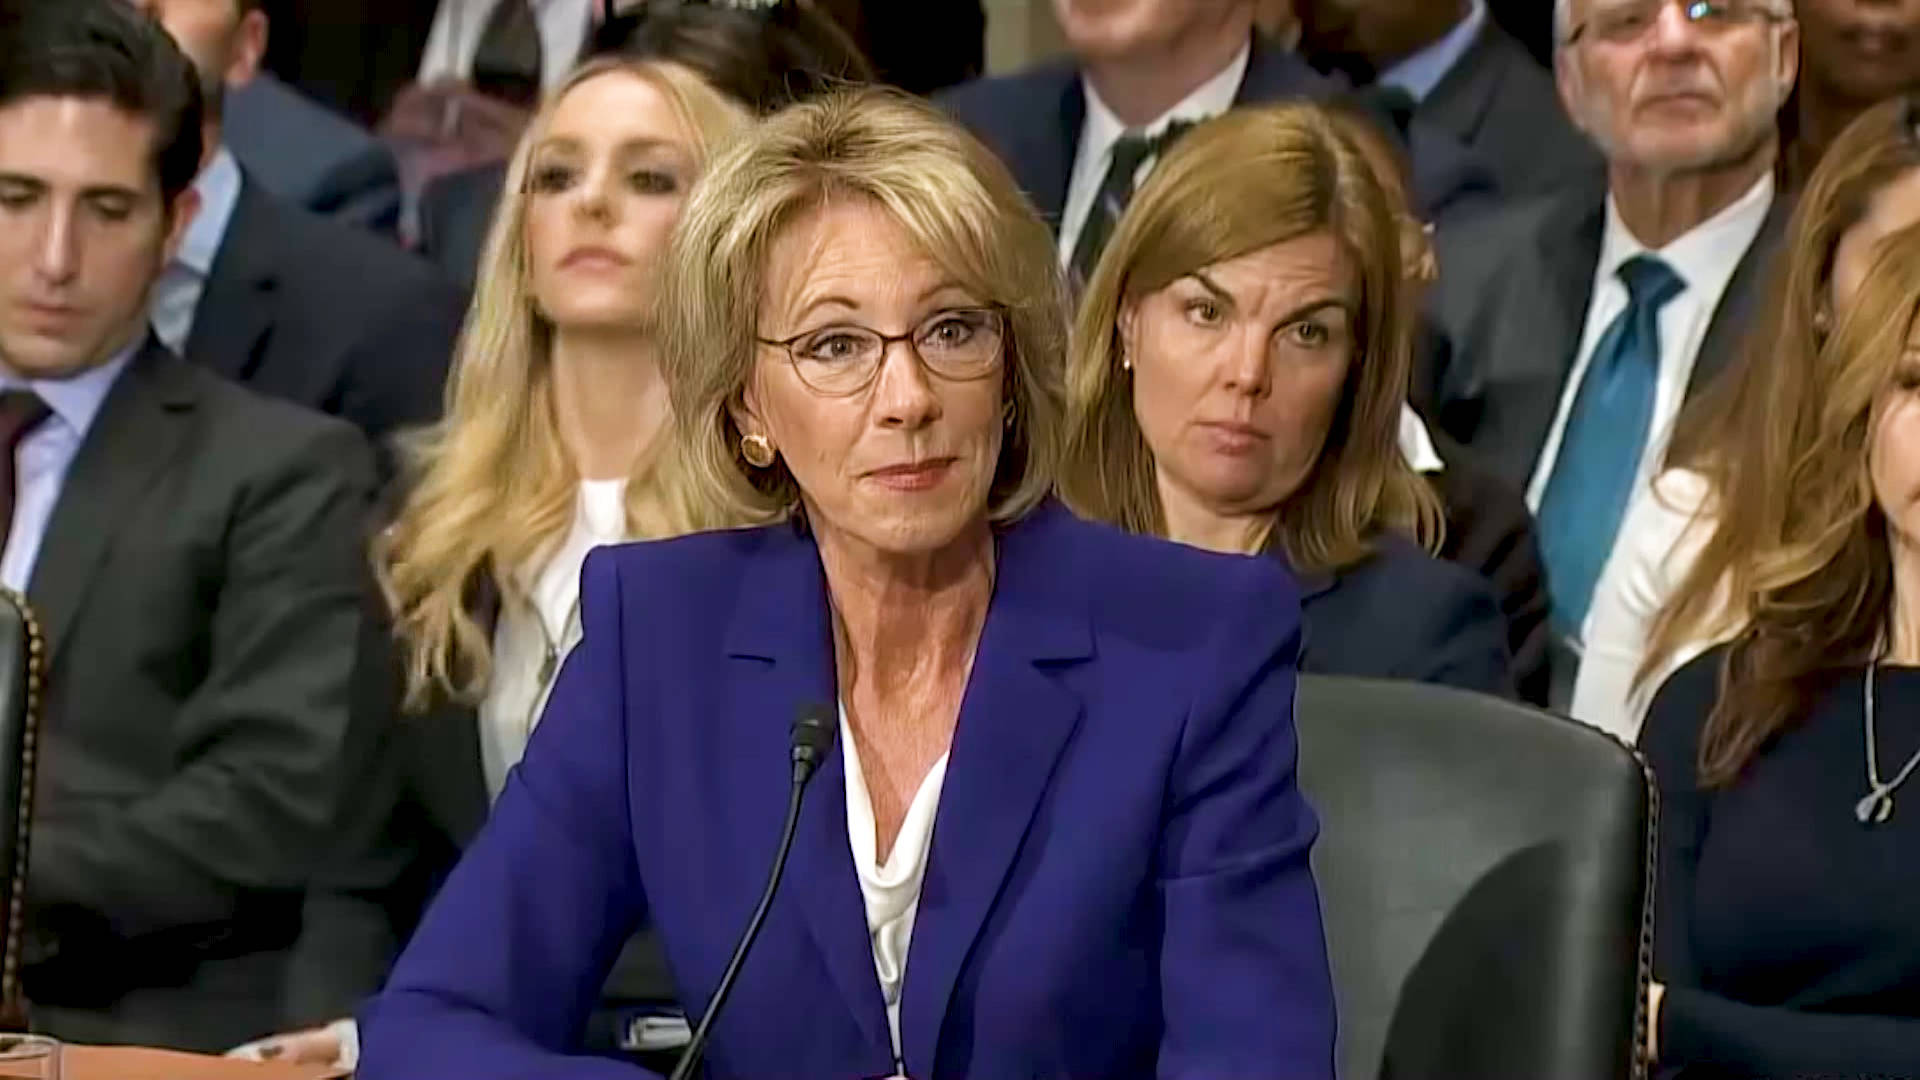 Books, Not Magazines: Outcry Grows over DeVos Plan to Divert Federal Funds and Put Guns in Schools